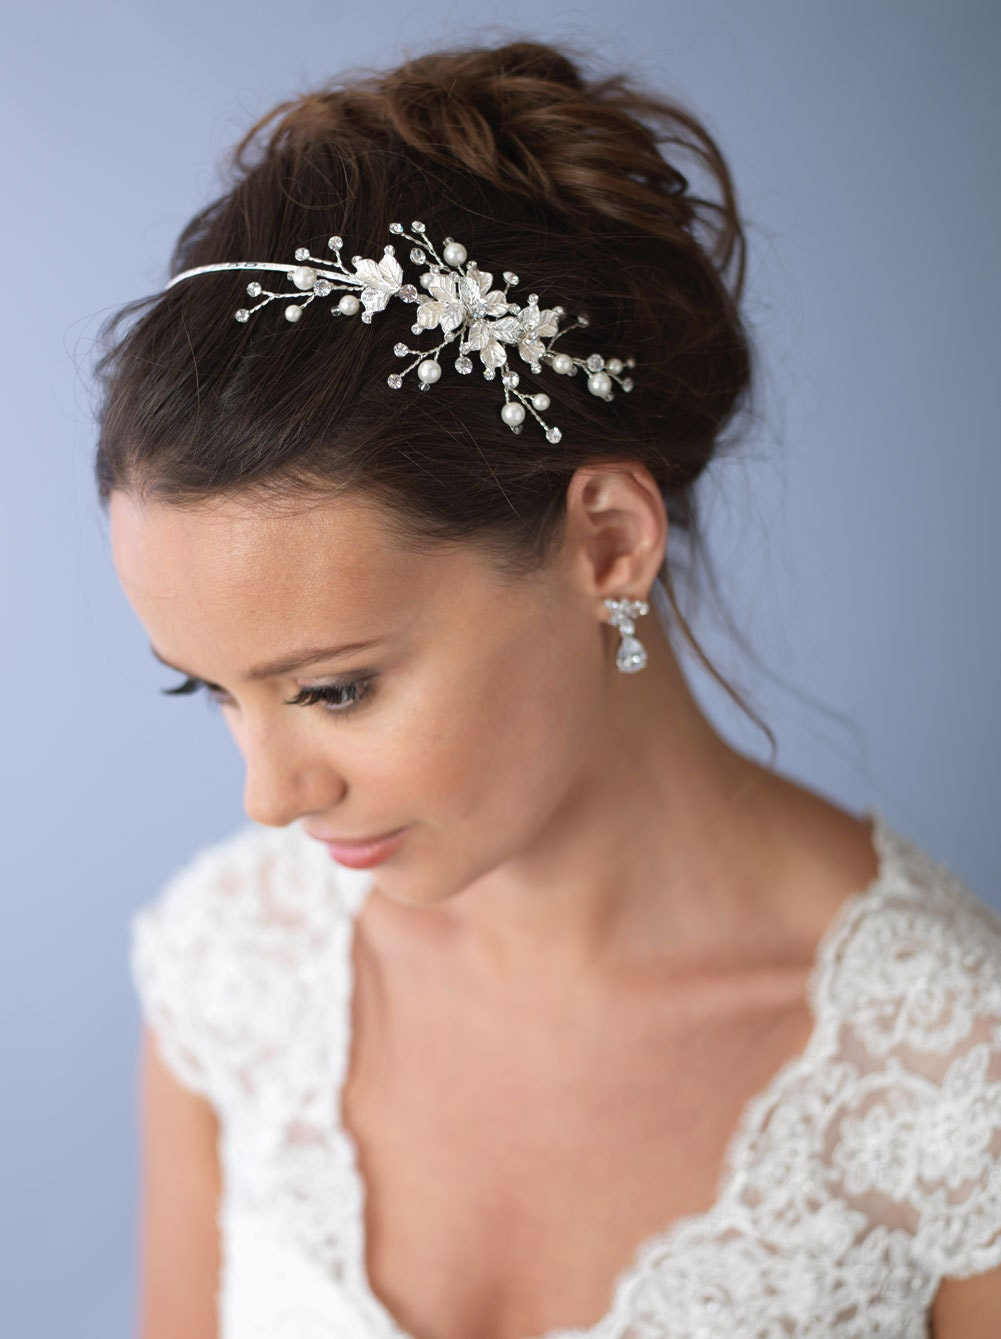 We have a stunning range of wedding hair accessories including bridal hair combs, tiaras, hair pins, flower hair clips, vine headpieces, etc.